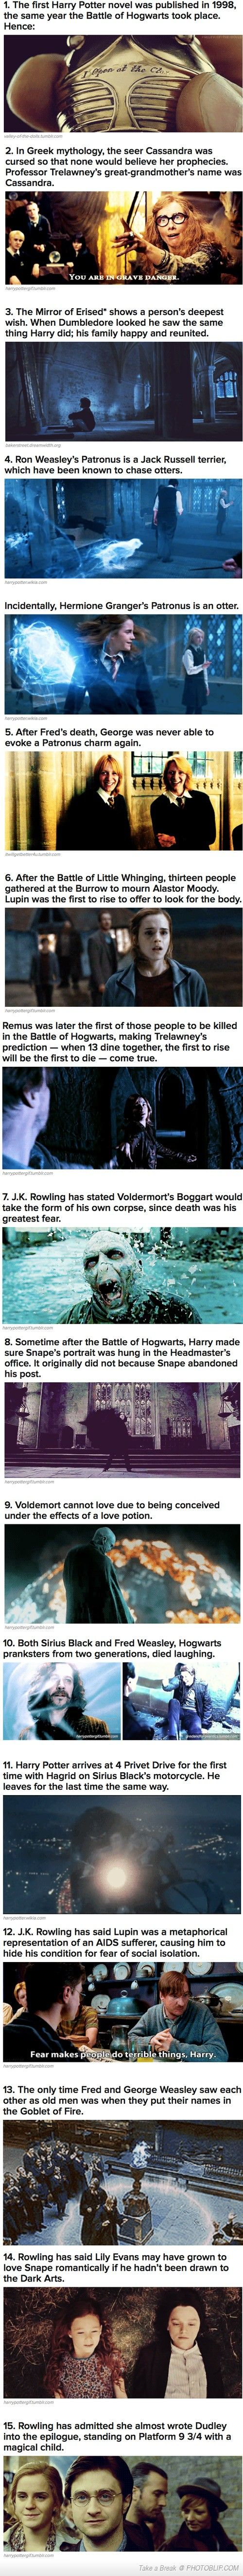 So many great things about the Harry Potter Universe. It was my childhood.SHE SHOULD'VE WRITTEN A MAGICAL CHILD THAT WAS THE CHILD OF DUDLEY!!!!